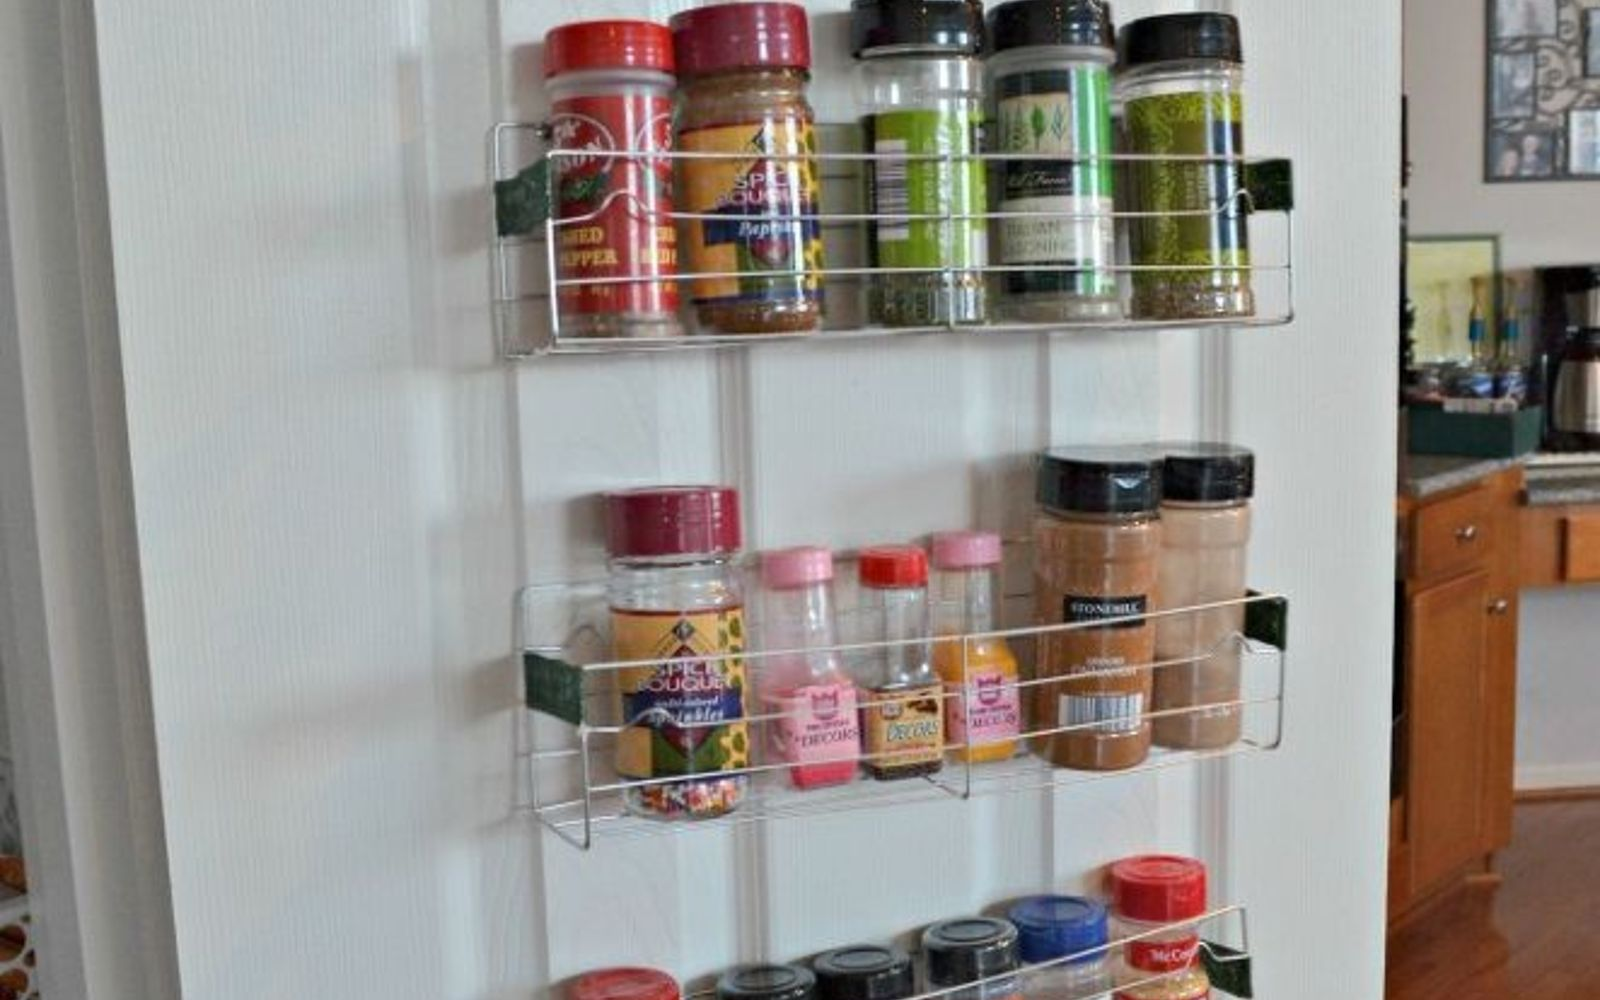 s 14 hidden home decor gems you can find in any dollar store, home decor, repurposing upcycling, A rickety cooling rack can store your spices